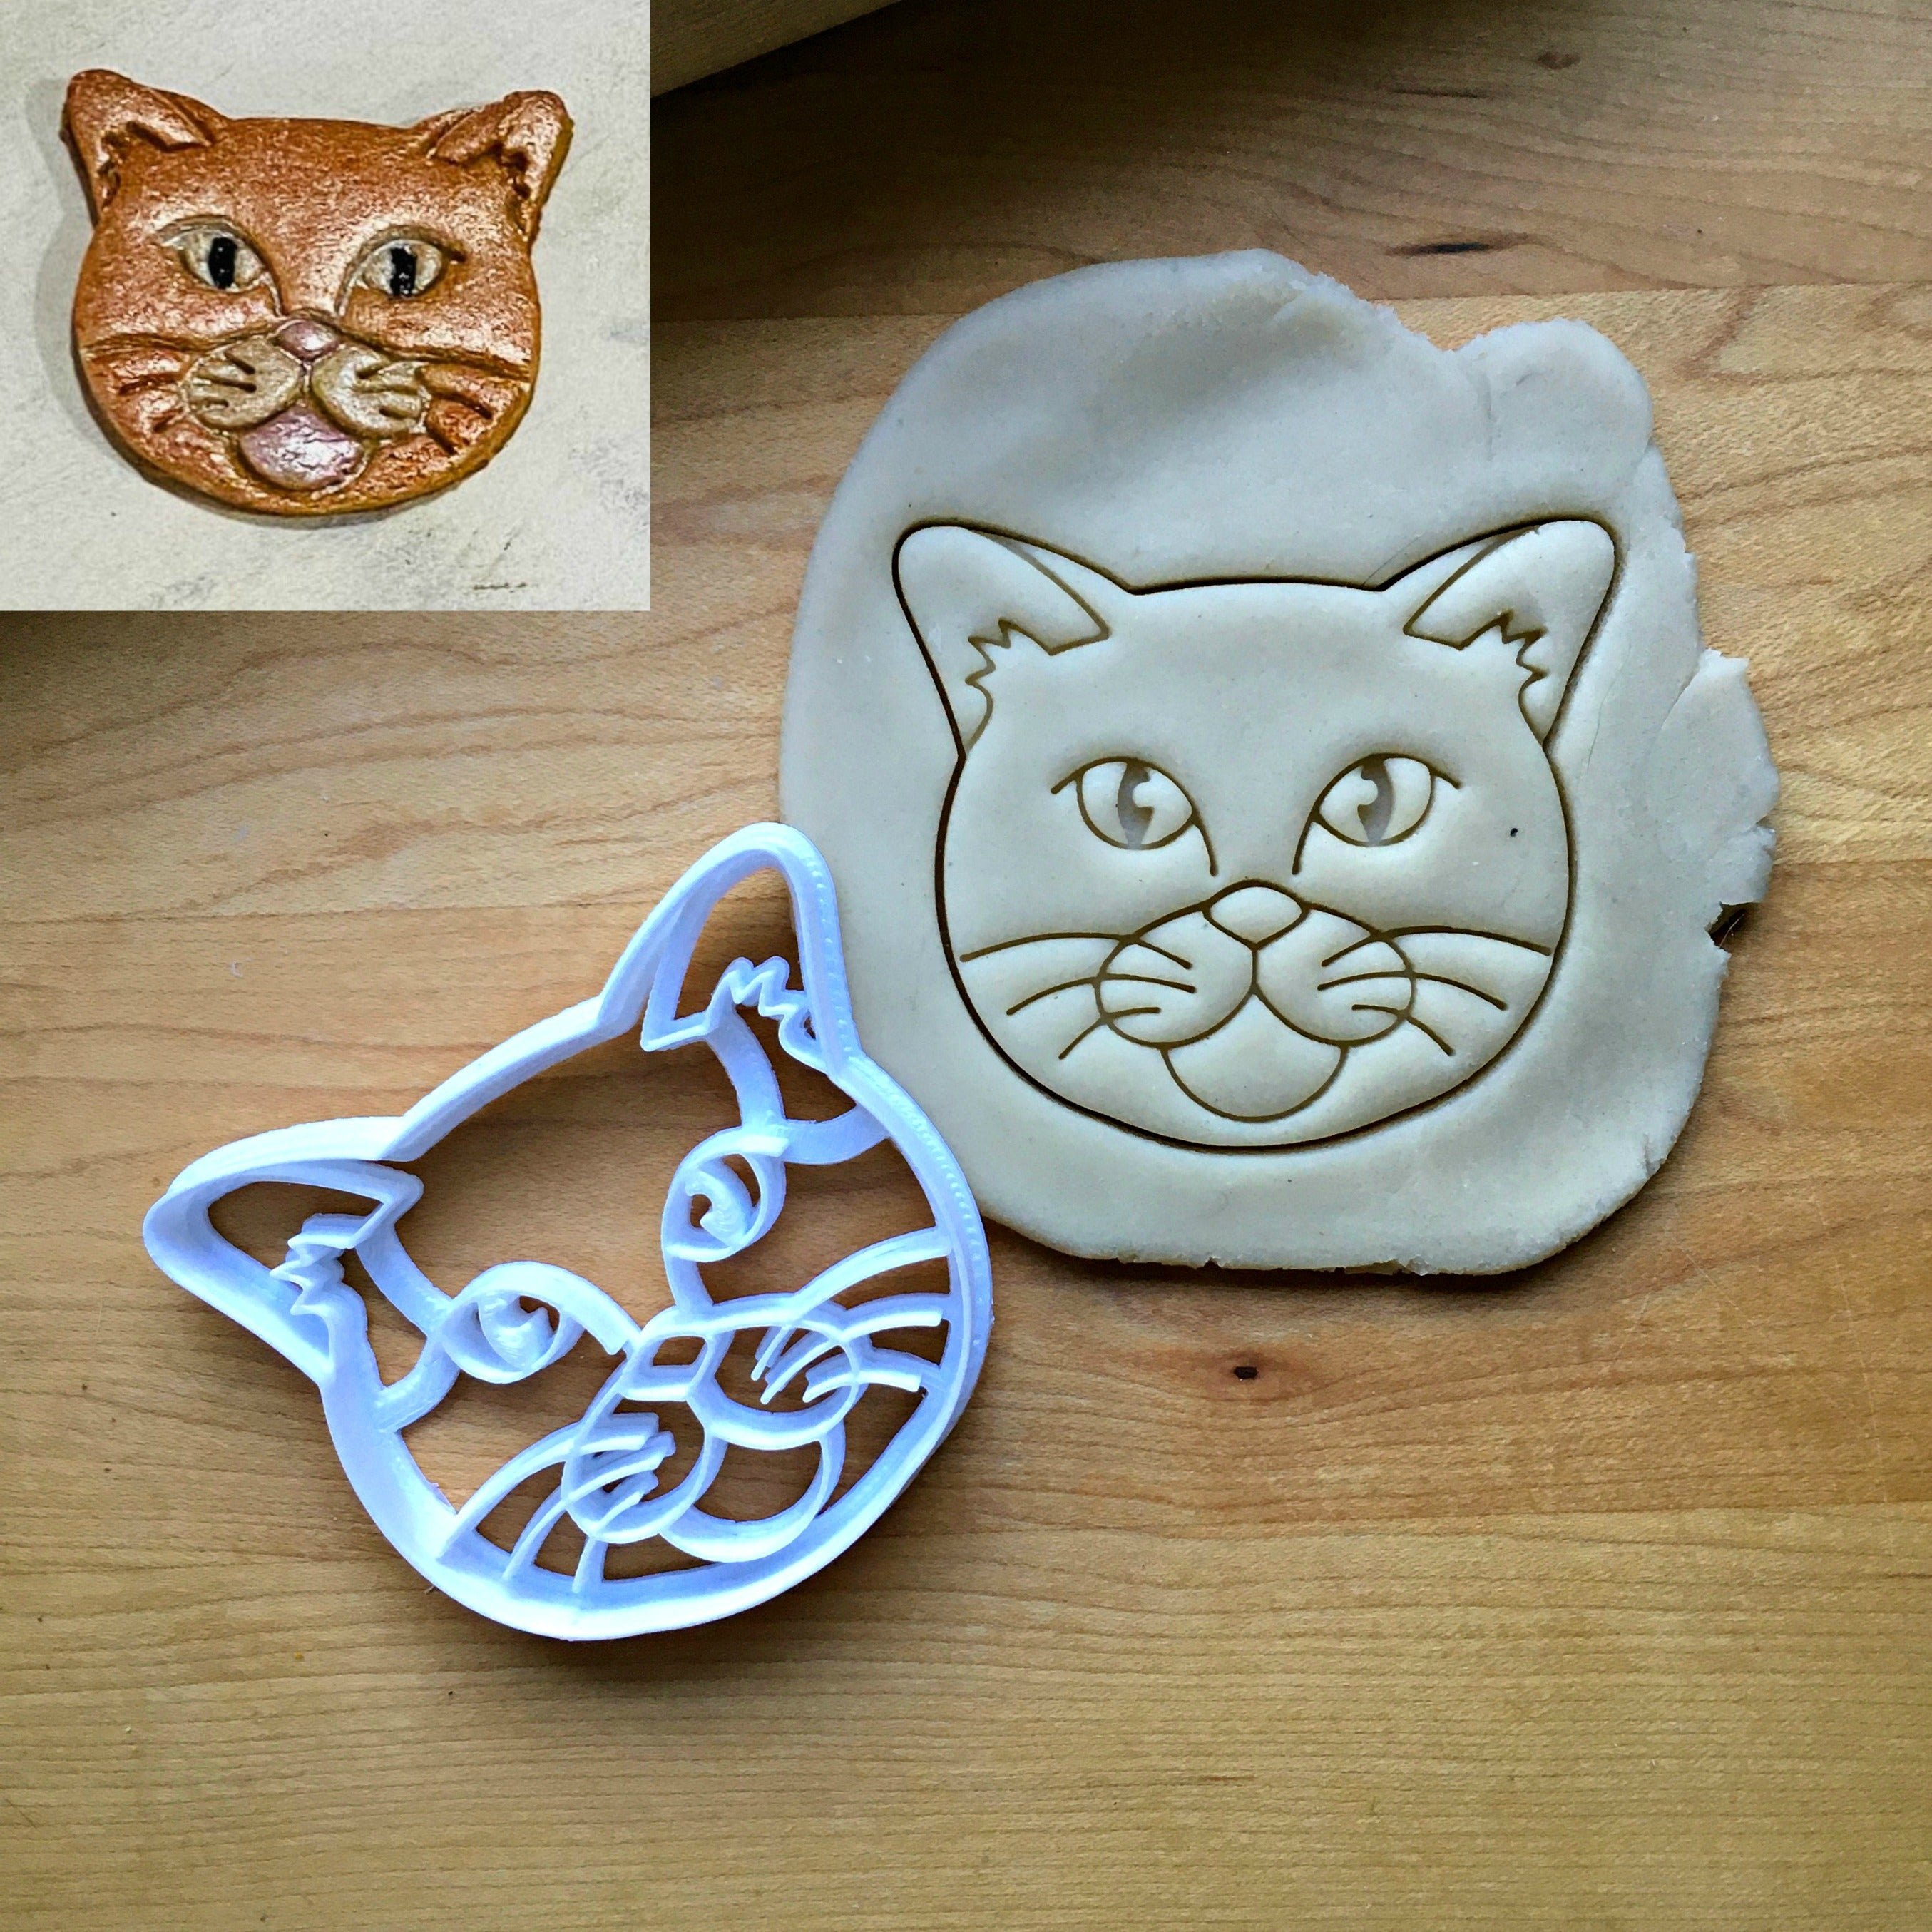 Short Haired Cat Cookie Cutter/Dishwasher Safe